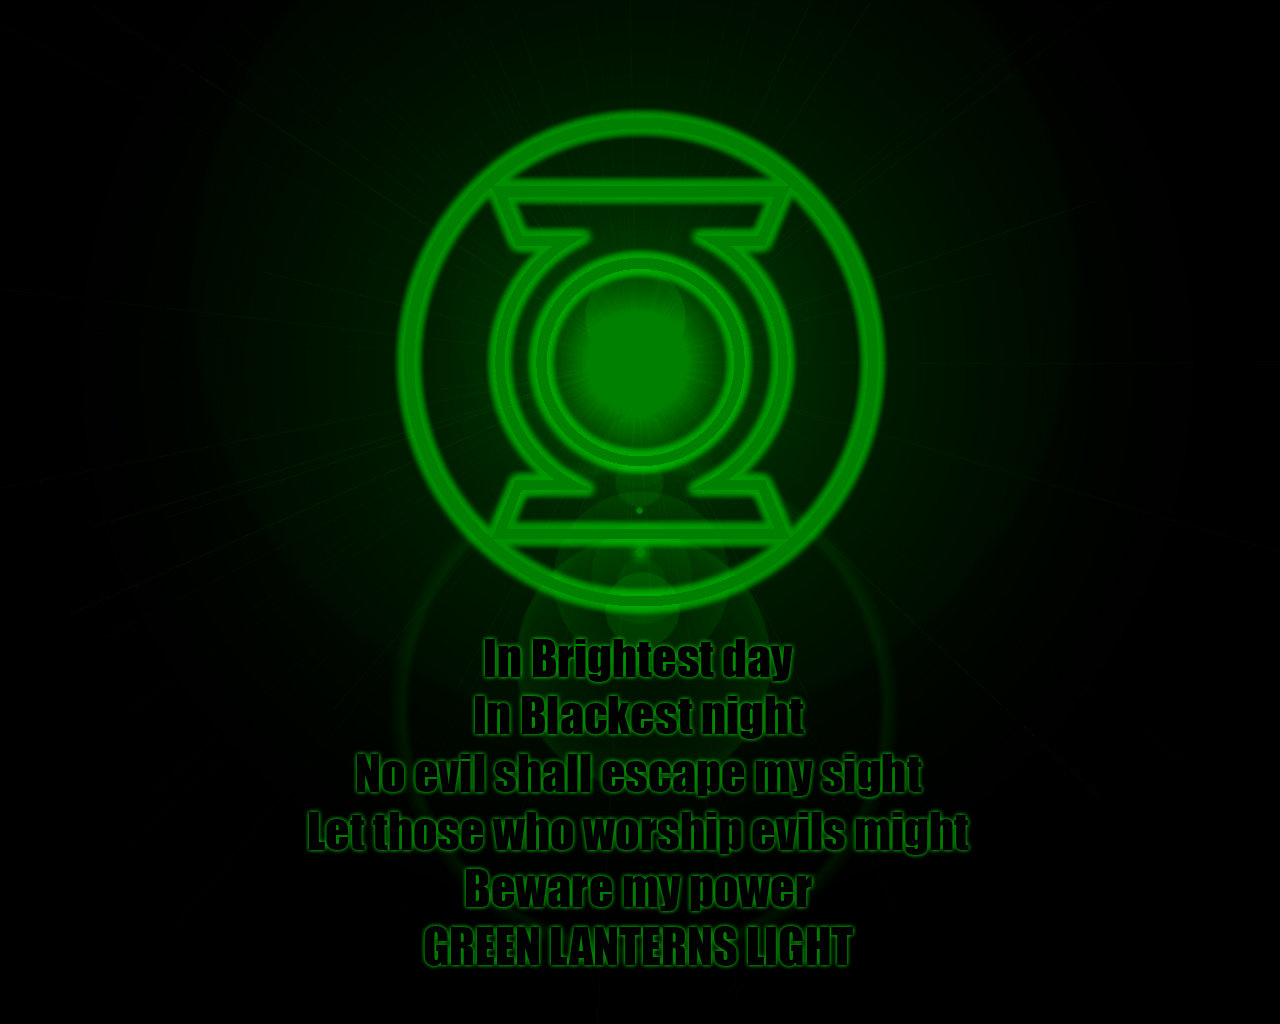 [50+] Green Lantern Oath Wallpaper on WallpaperSafari